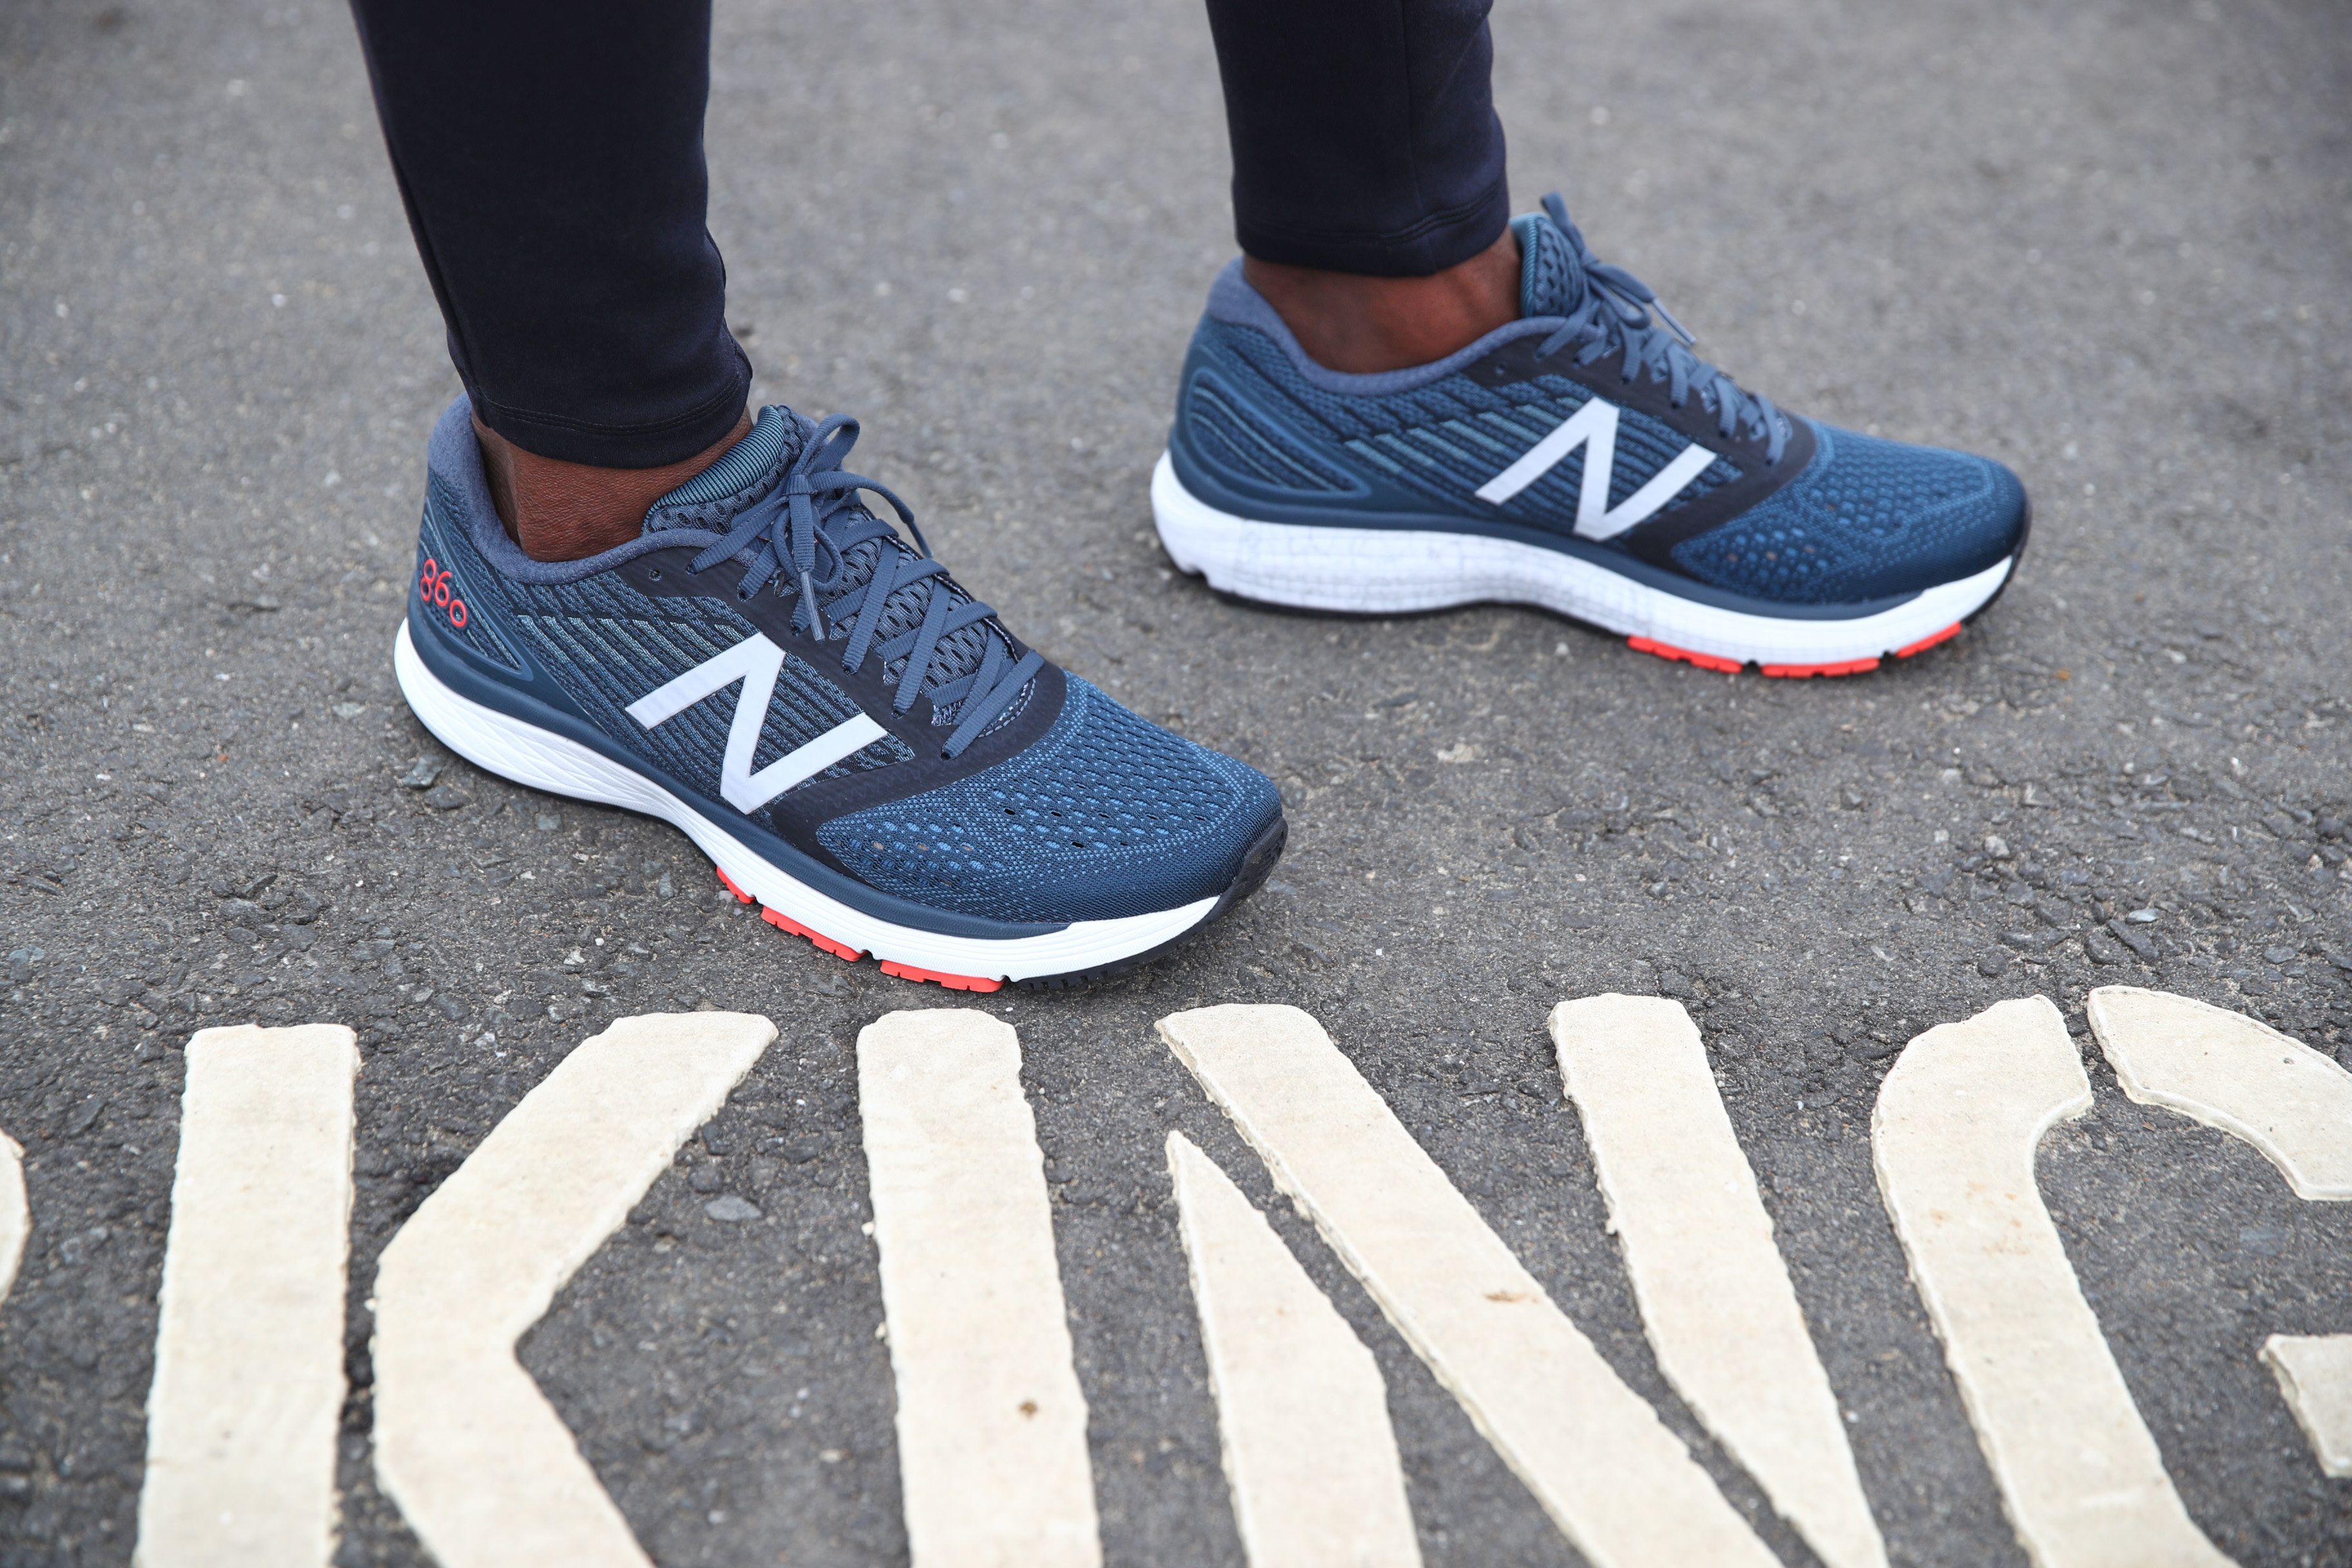 New Balance Men S 860v9 Stability Running Shoes Brooks Running Shoes Puma Basketball Shoes